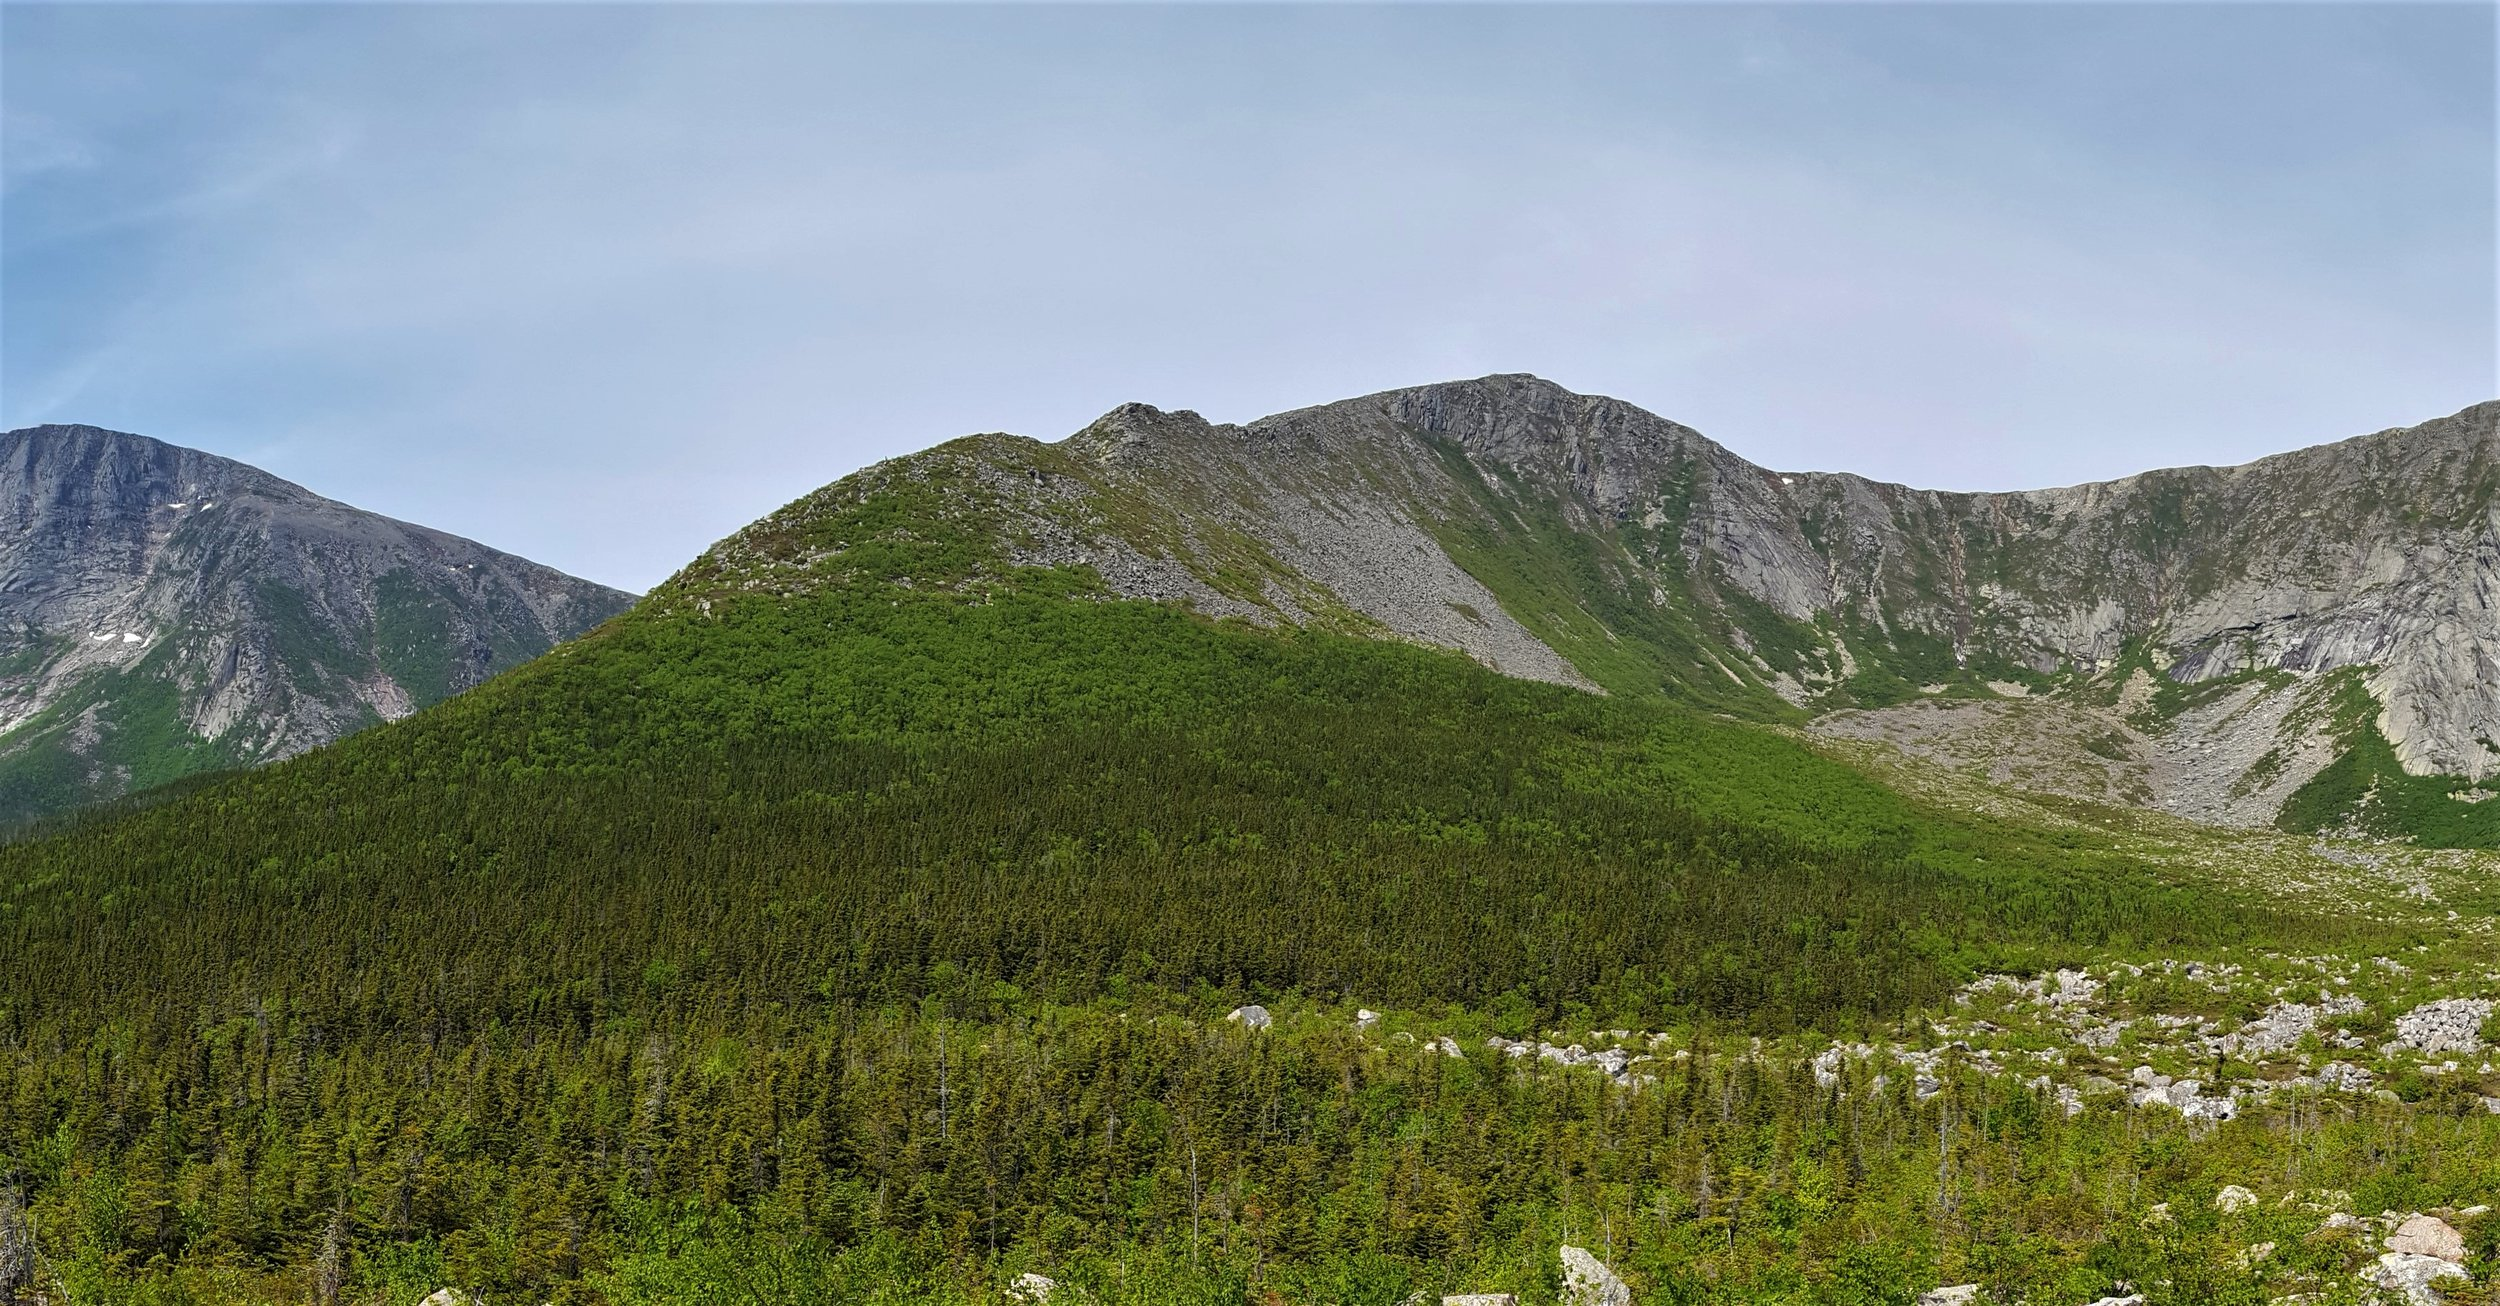 Hamlin Ridge from Blueberry Knoll at the mouth of North Basin